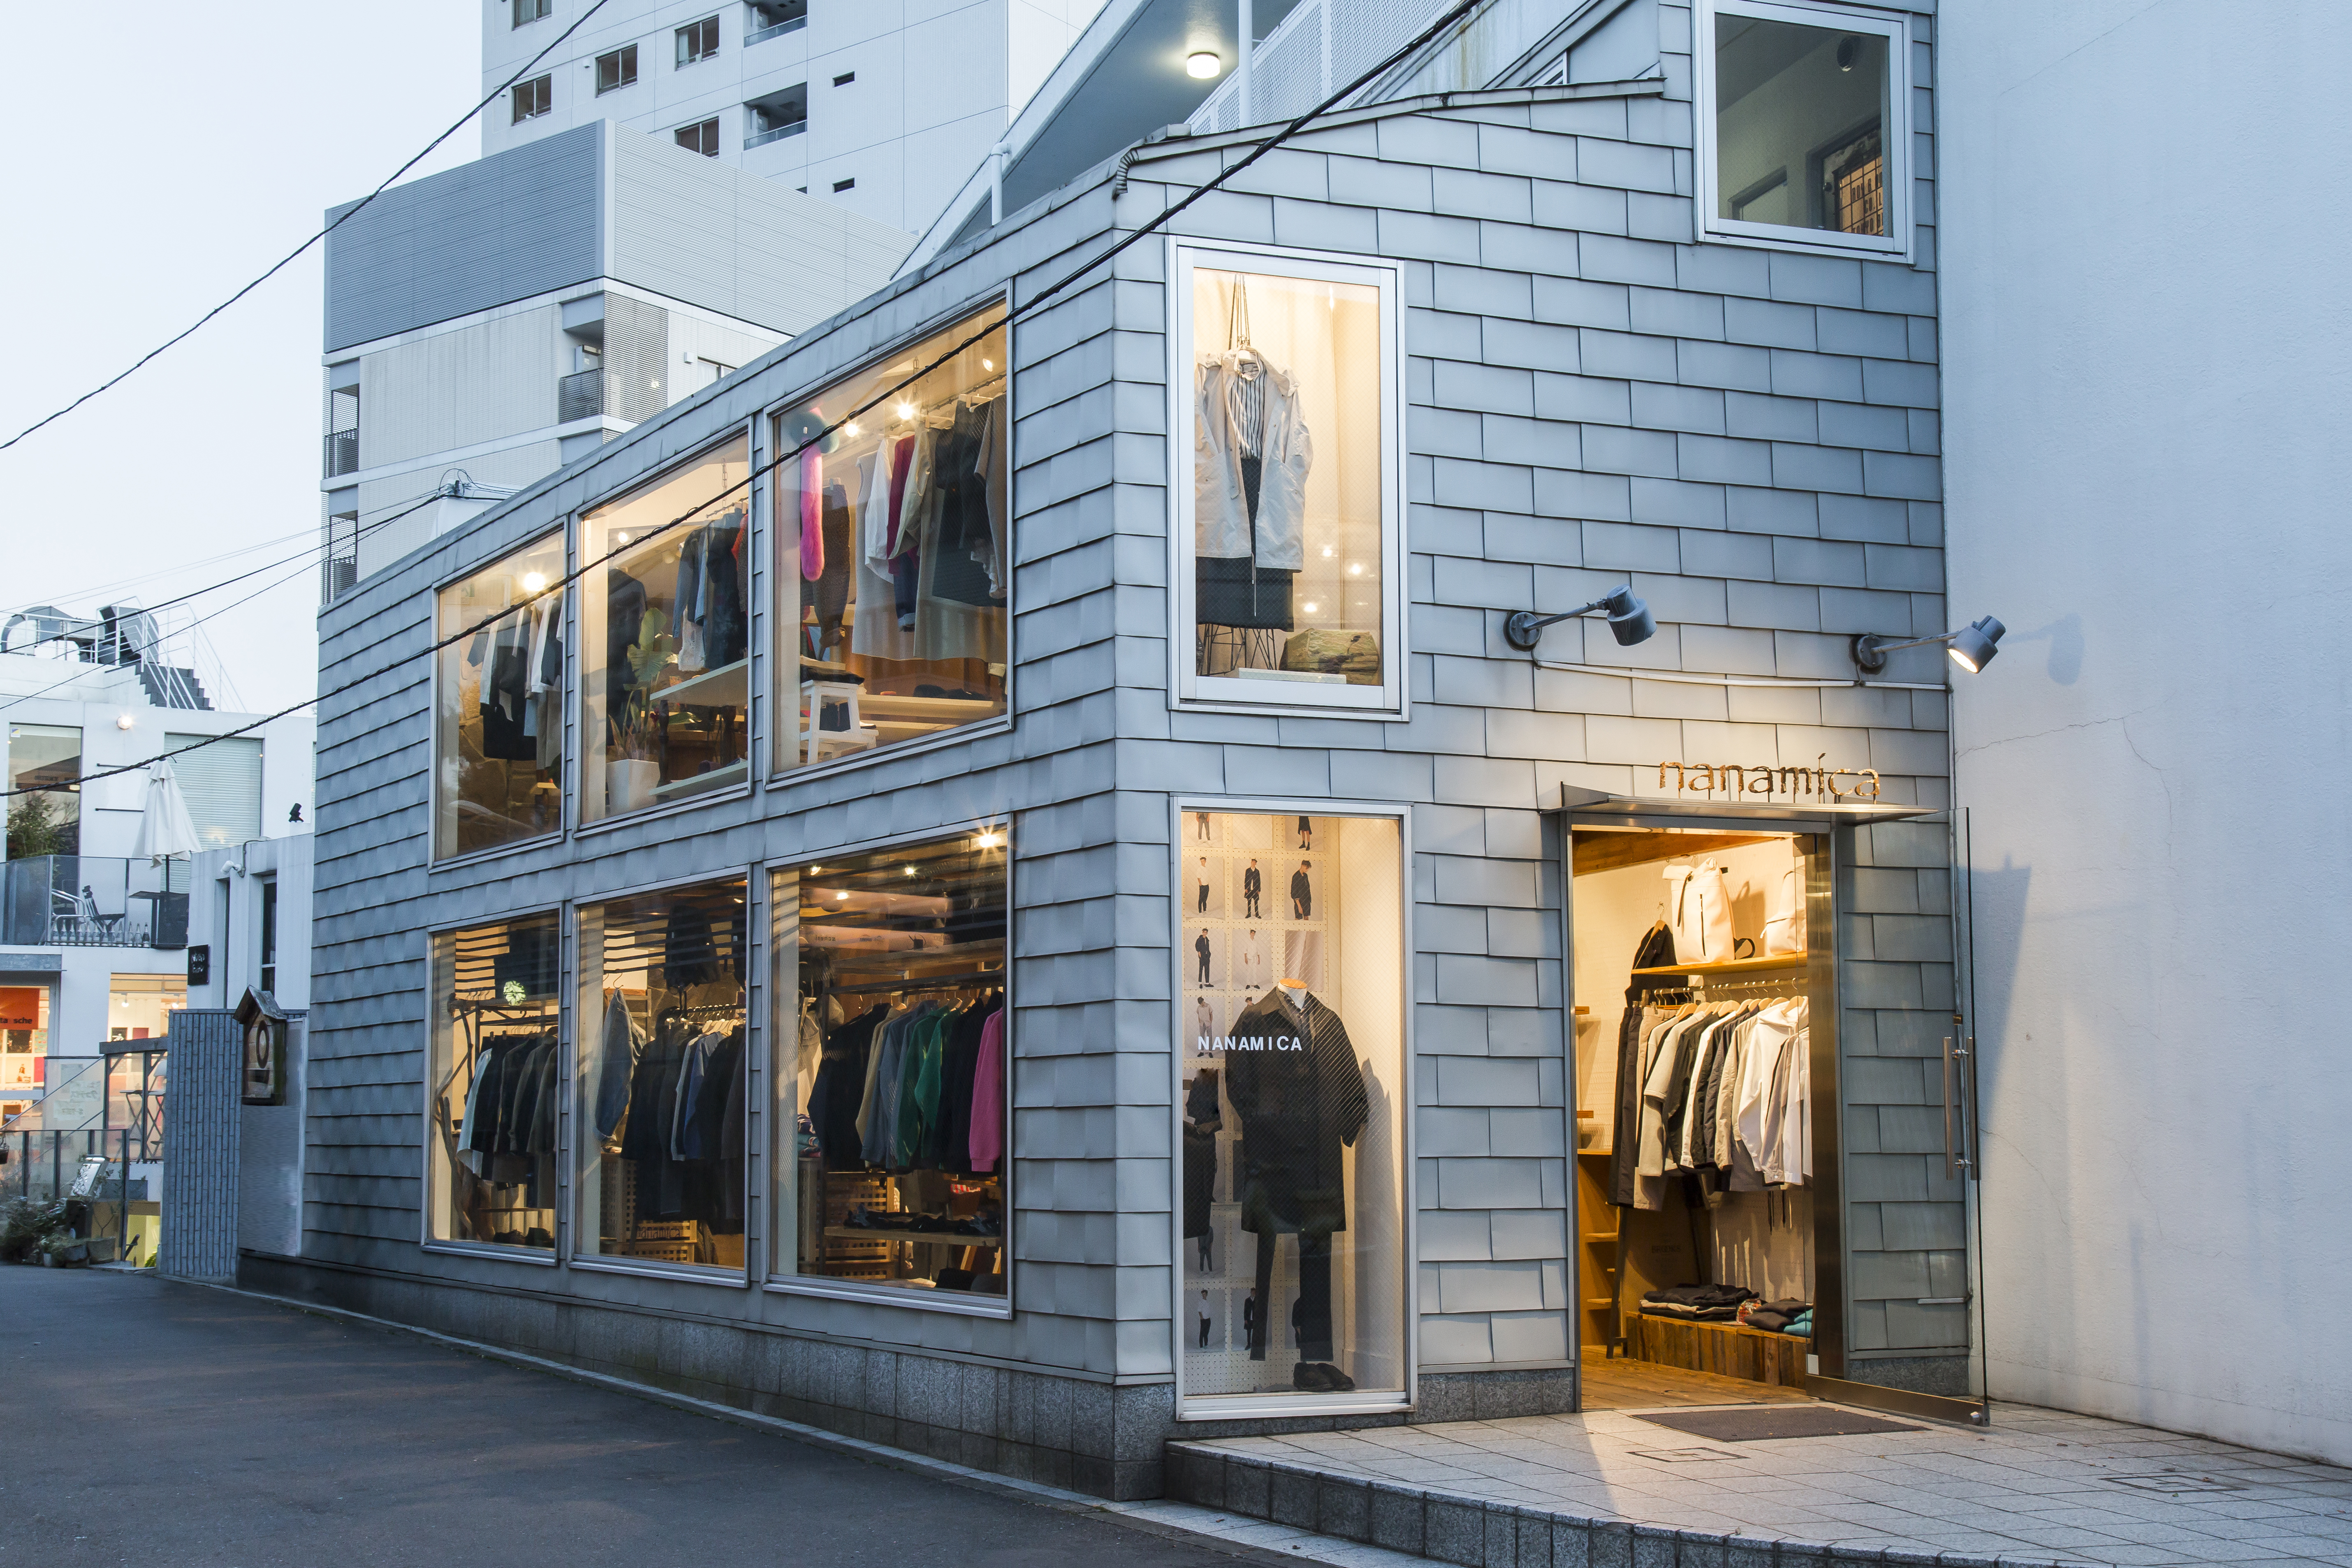 One of Nanamica's stores in Japan.